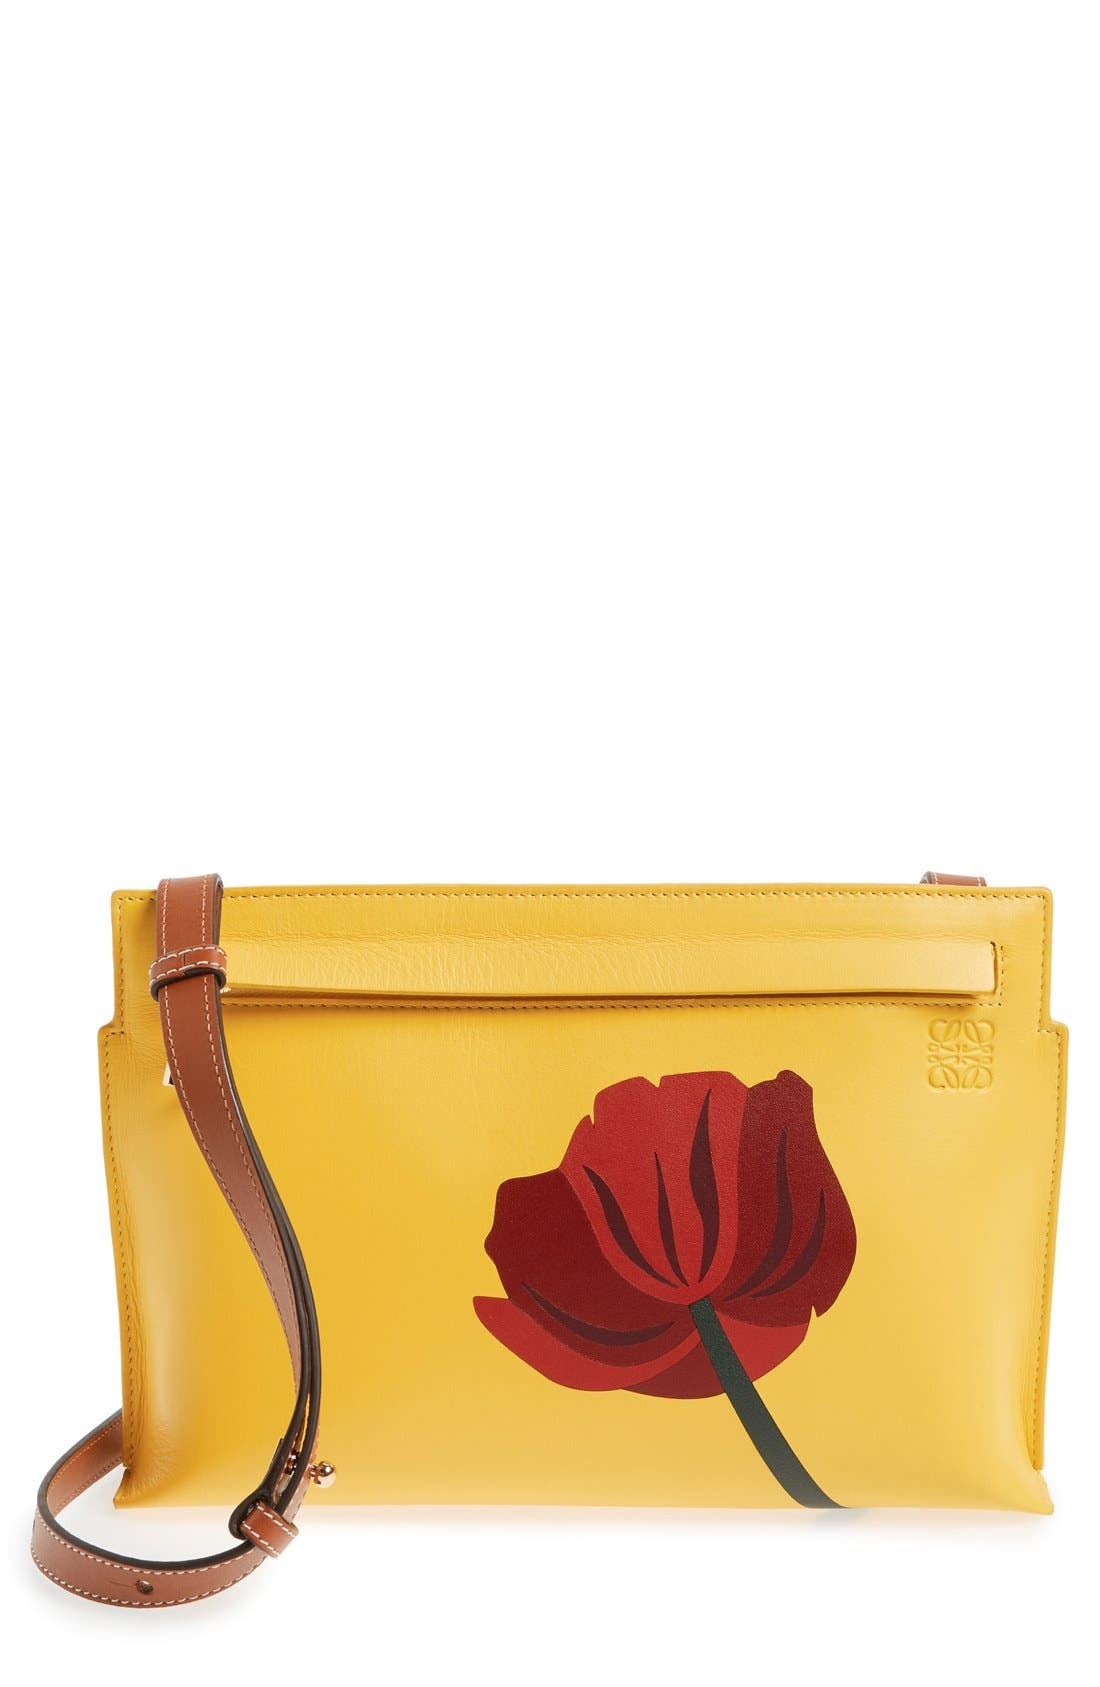 Alternate Image 1 Selected - Loewe 'Fiore' Marquetry Calfskin Leather Crossbody Clutch